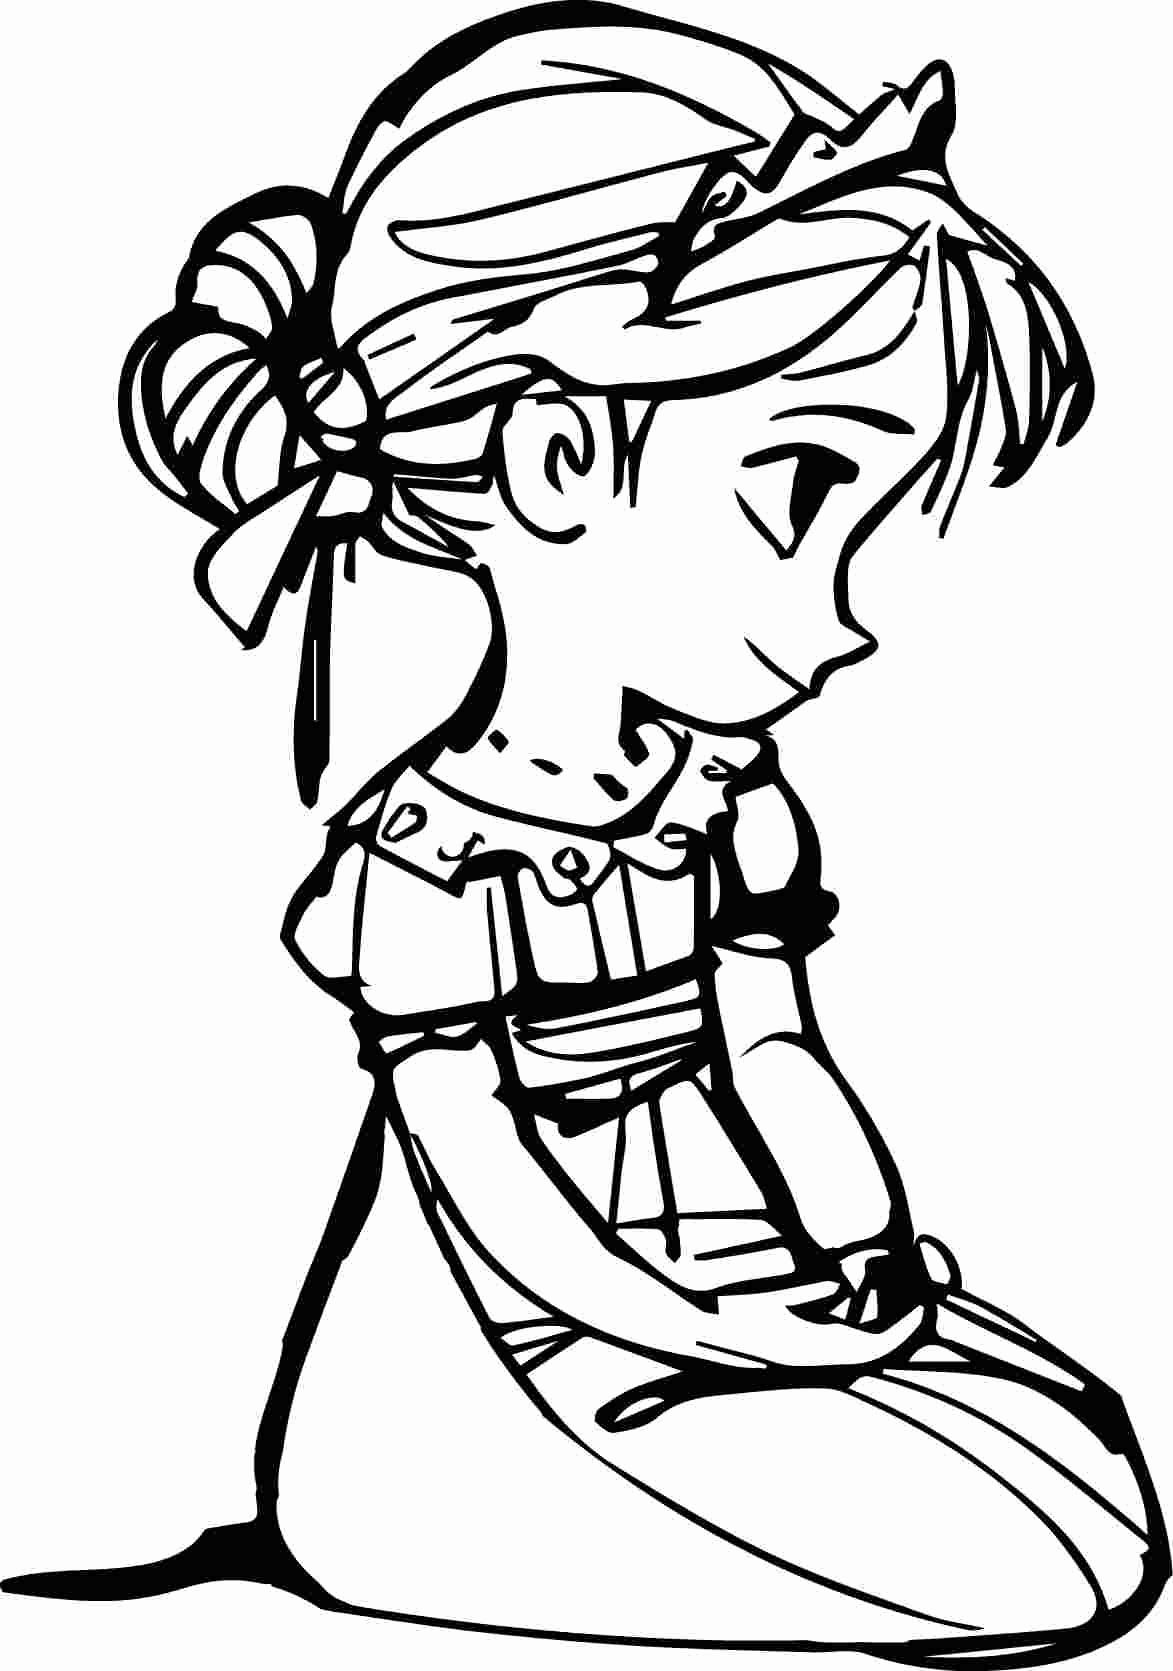 Baby Elsa And Anna Colouring Pages Fresh Baby Elsa Coloring Pages Frozen Coloring Pages Elsa Coloring Pages Elsa Coloring